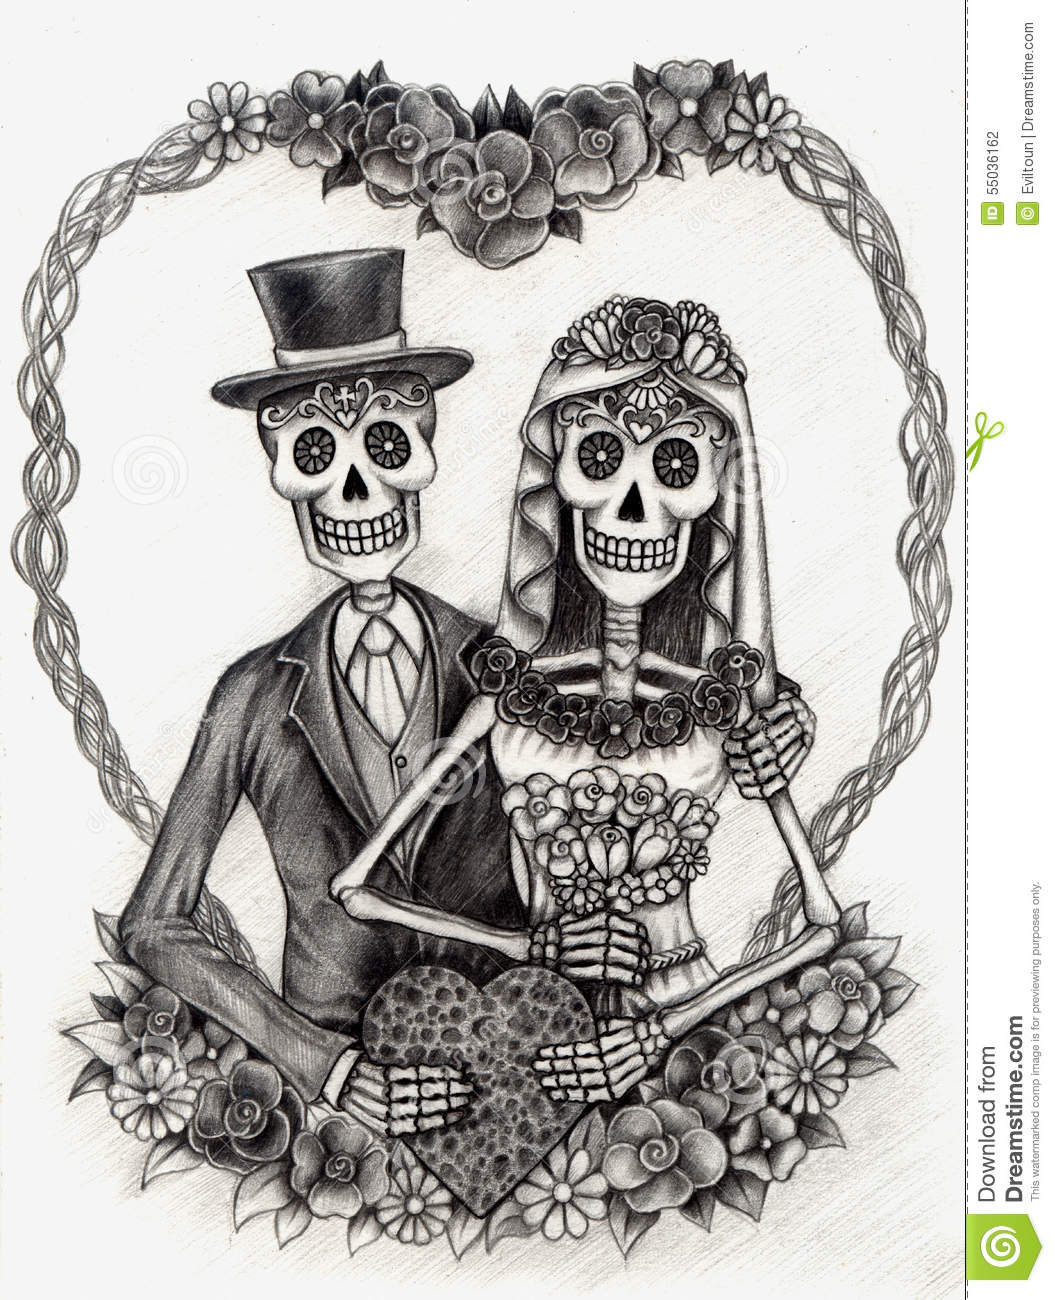 Ssckull clipart wedding Drawing (37+) Wedding Dead the